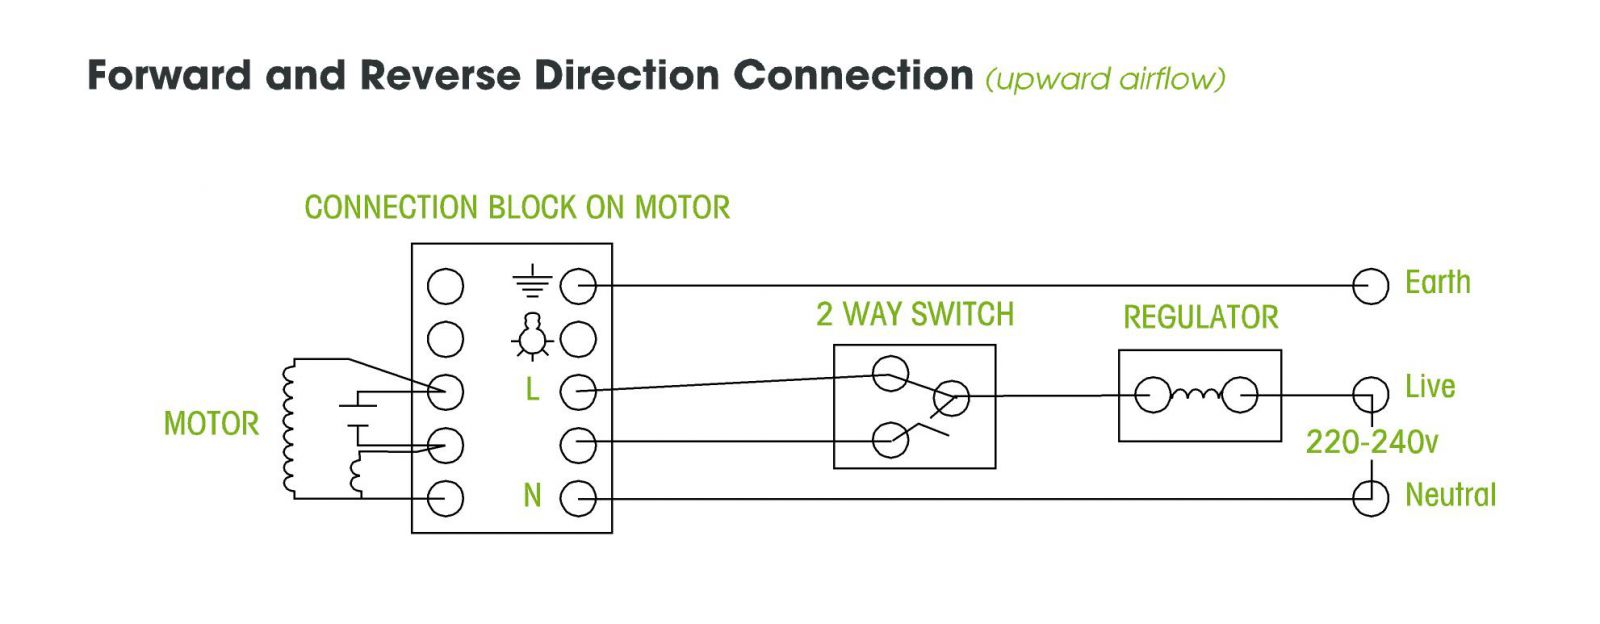 Solent 2 Way Switch Earth Wiring Instructions